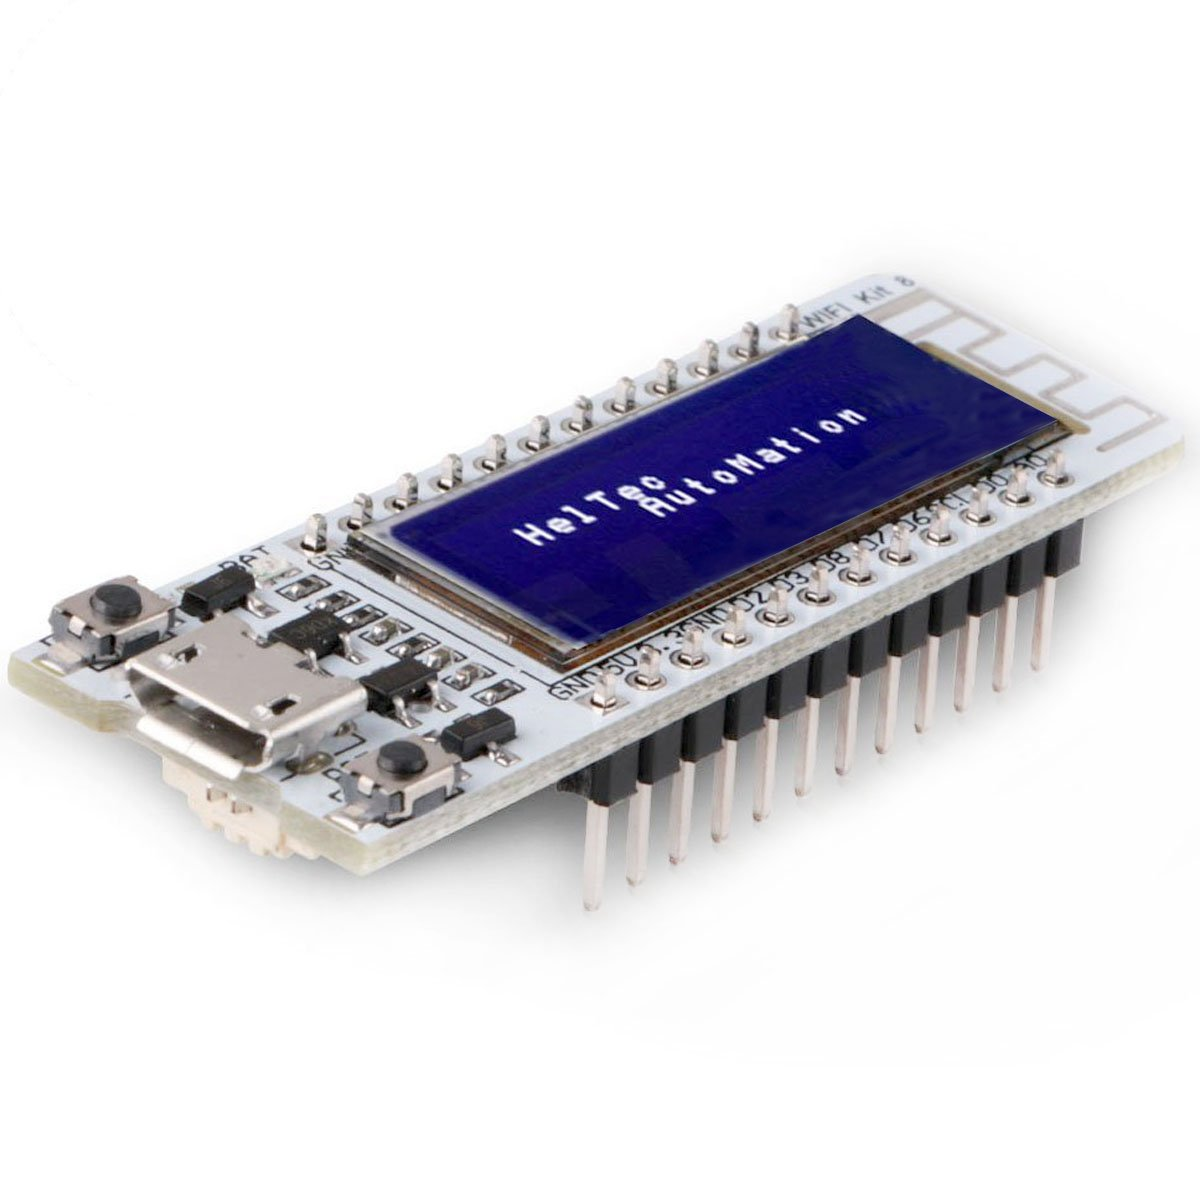 MakerFocus ESP8266 WiFi Development Board with 0.91 Inch ESP8266 OLED Display CP2012 Support Arduino IDE NodeMCU LUA